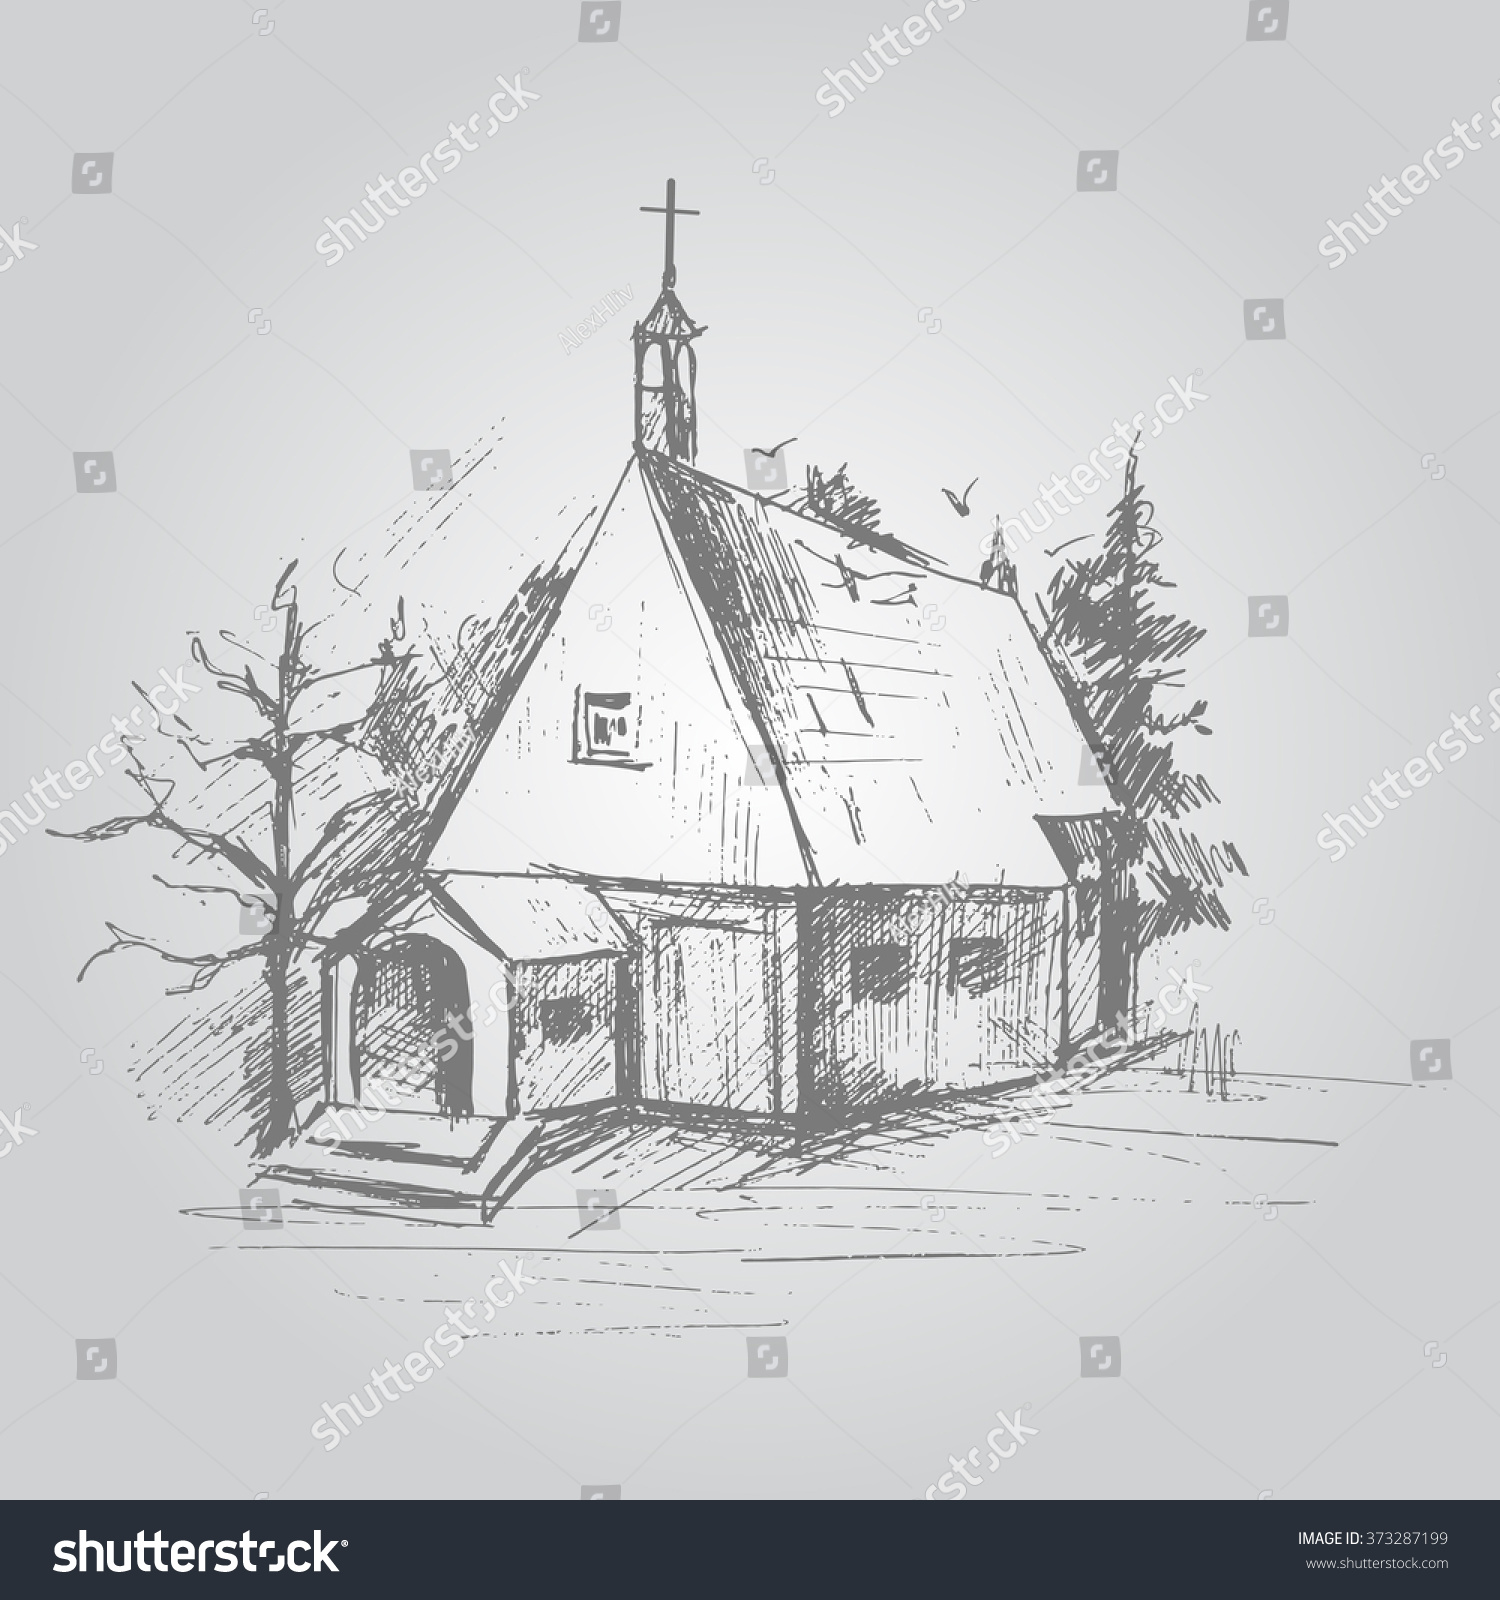 Hand pencil drawing house in forest vector illustration